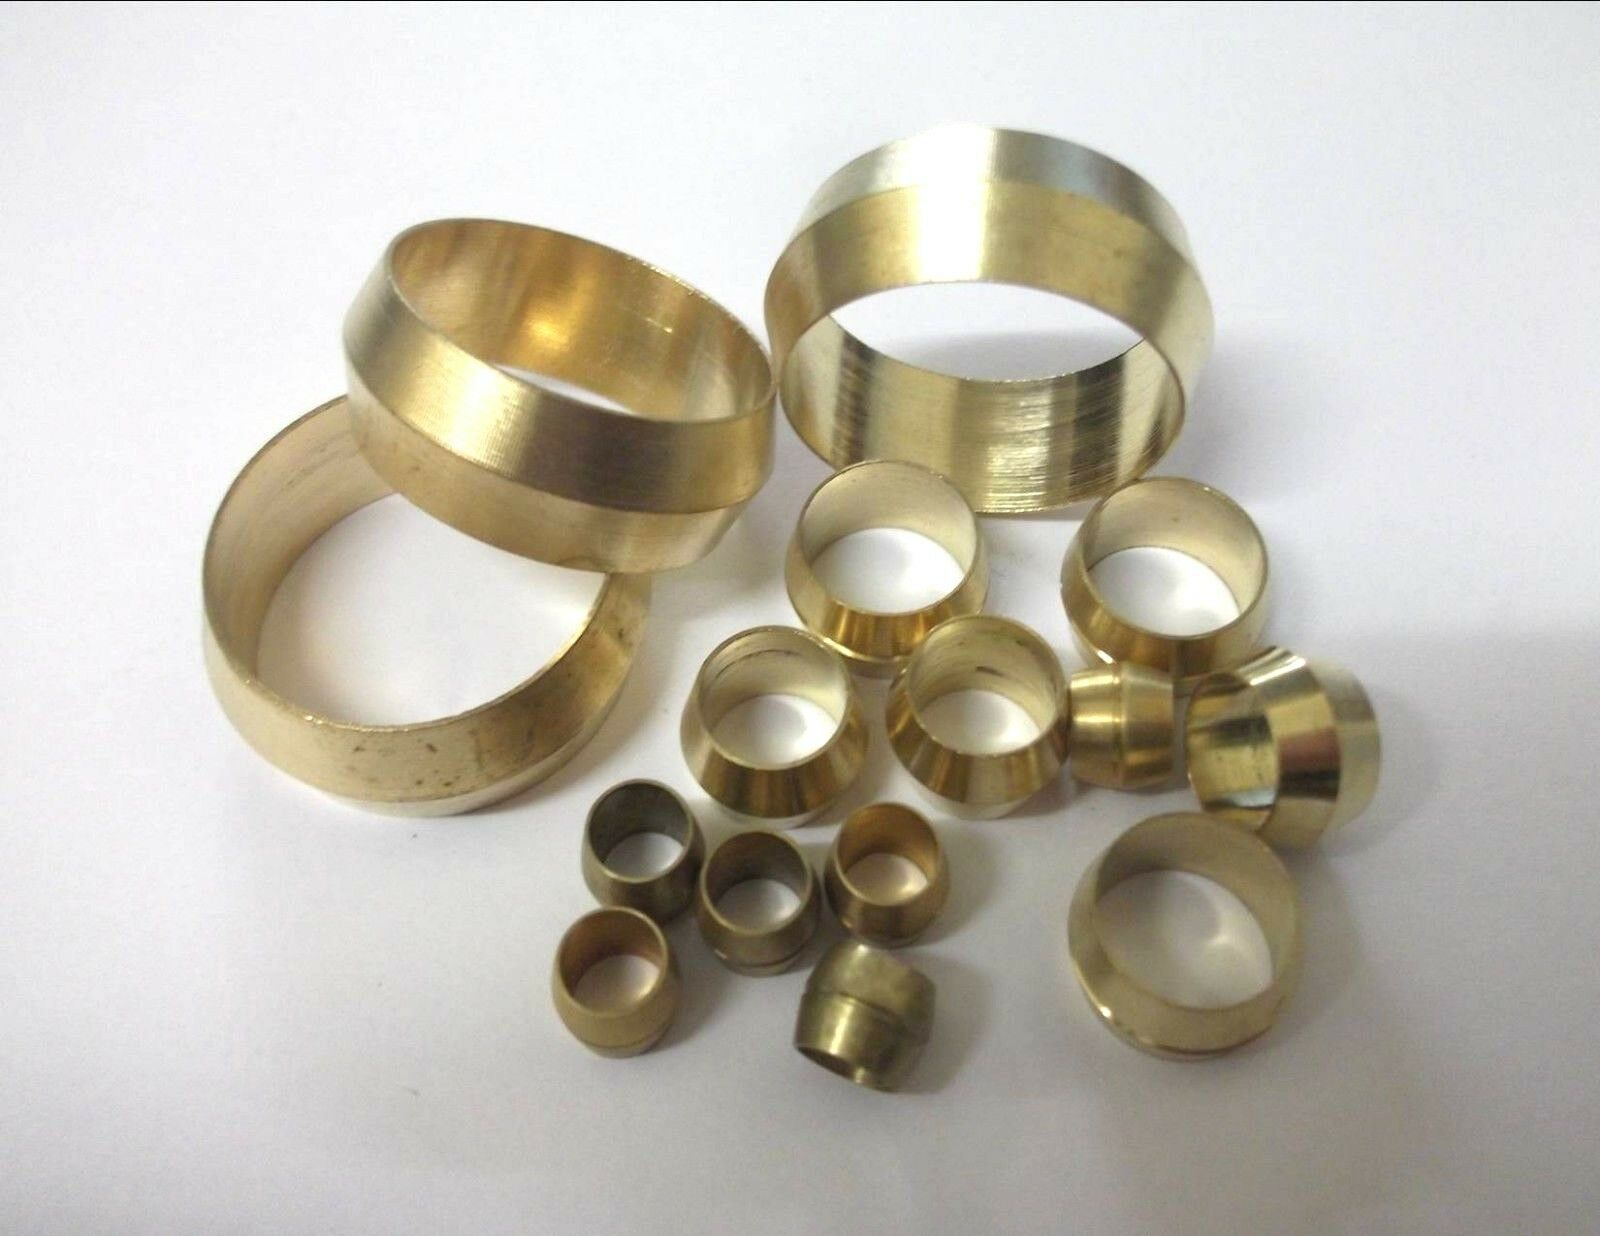 STEPPED OLIVES METRIC BRASS 6MM PLUMBING COMPRESSION FUEL COPPER PIPE x 100